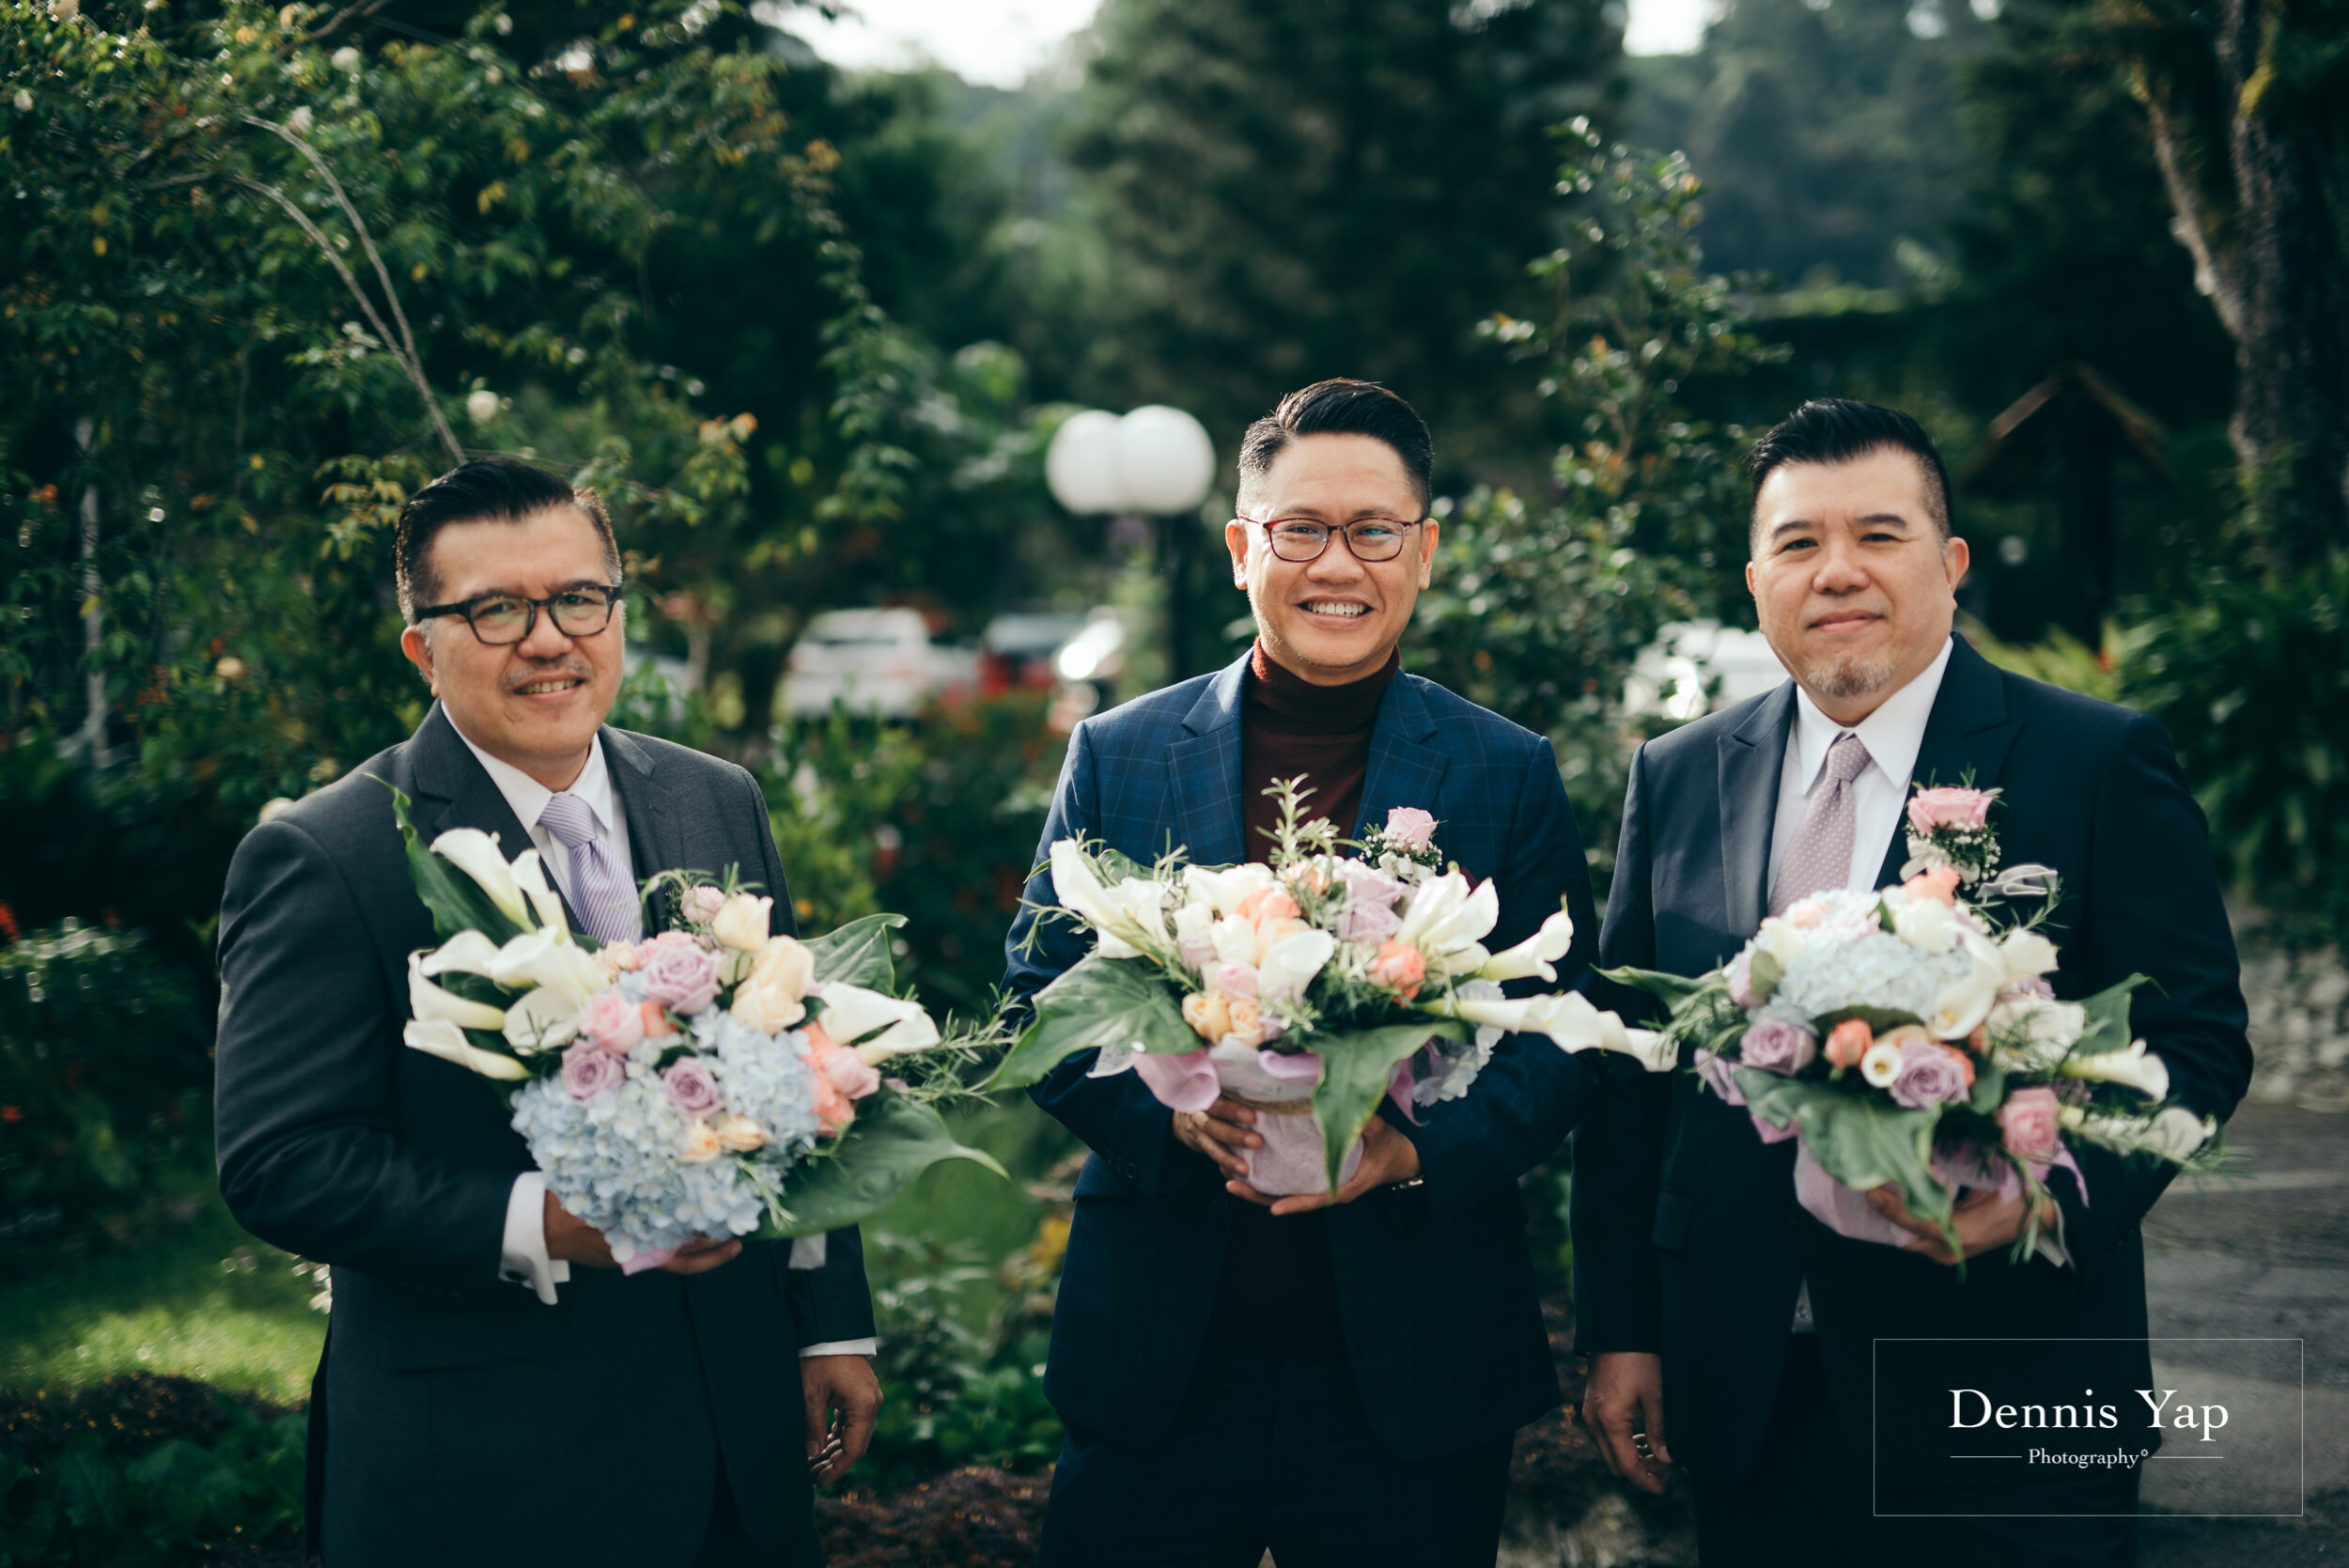 alex siowli wedding reception cameron highlands smoke house dennis yap photography malaysia traditional church wedding-113.jpg